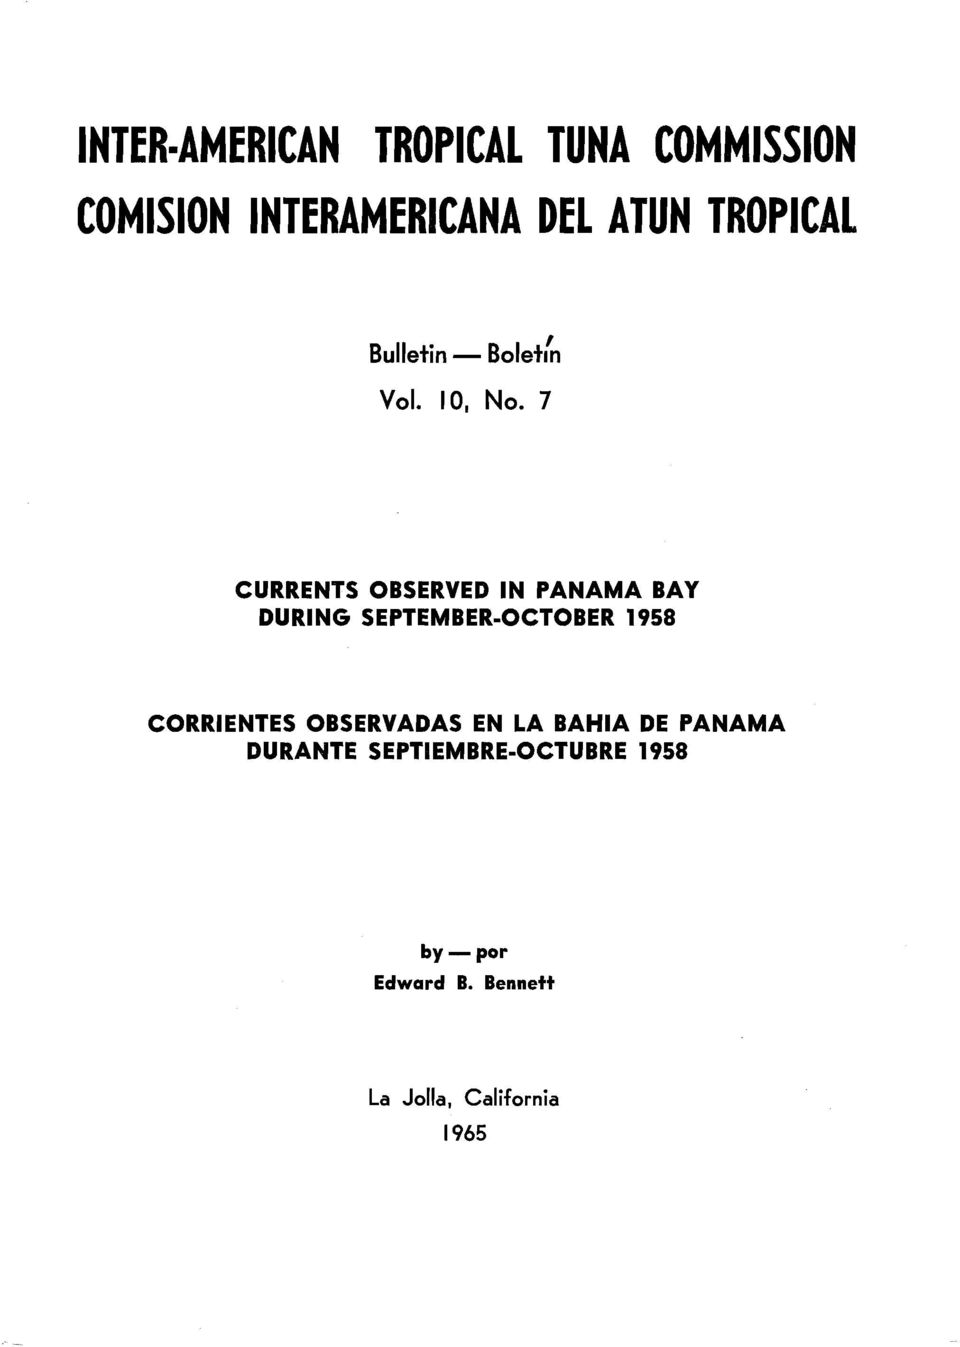 7 CURRENTS OBSERVED IN PANAMA BAY DURING SEPTEMBER-OCTOBER 1958 CORRIENTES